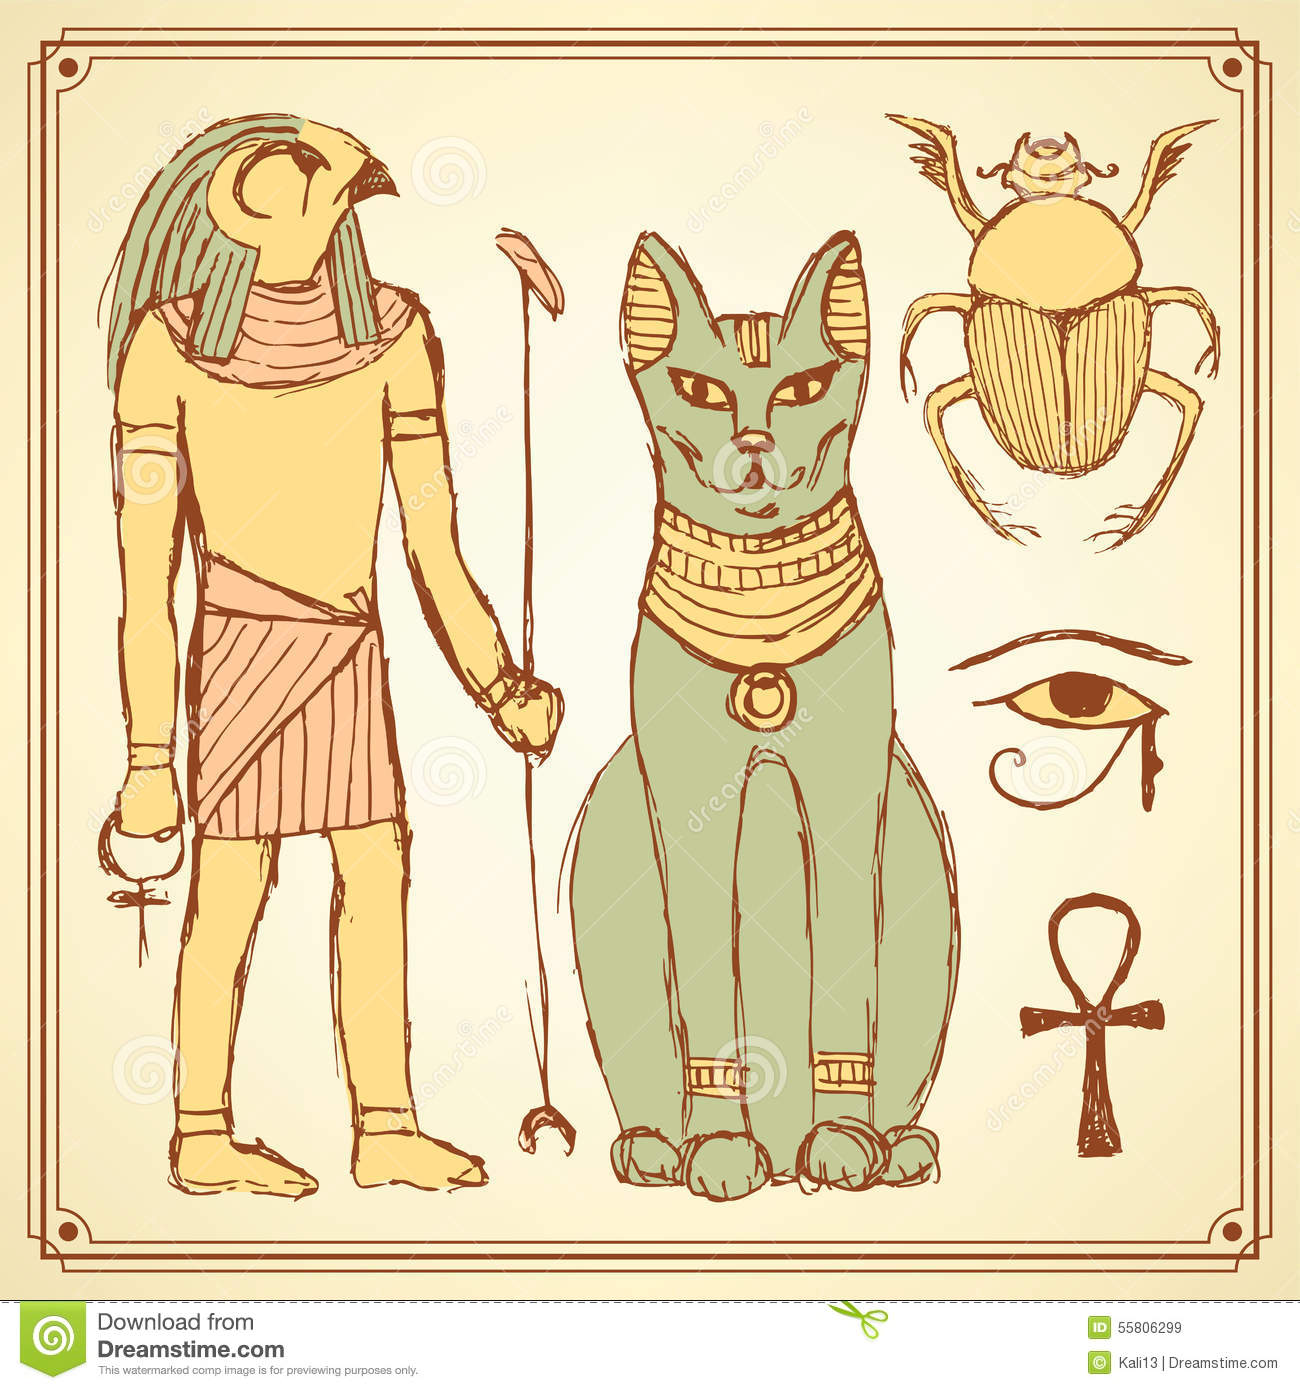 Sketch Egyptian symbols in vintage style